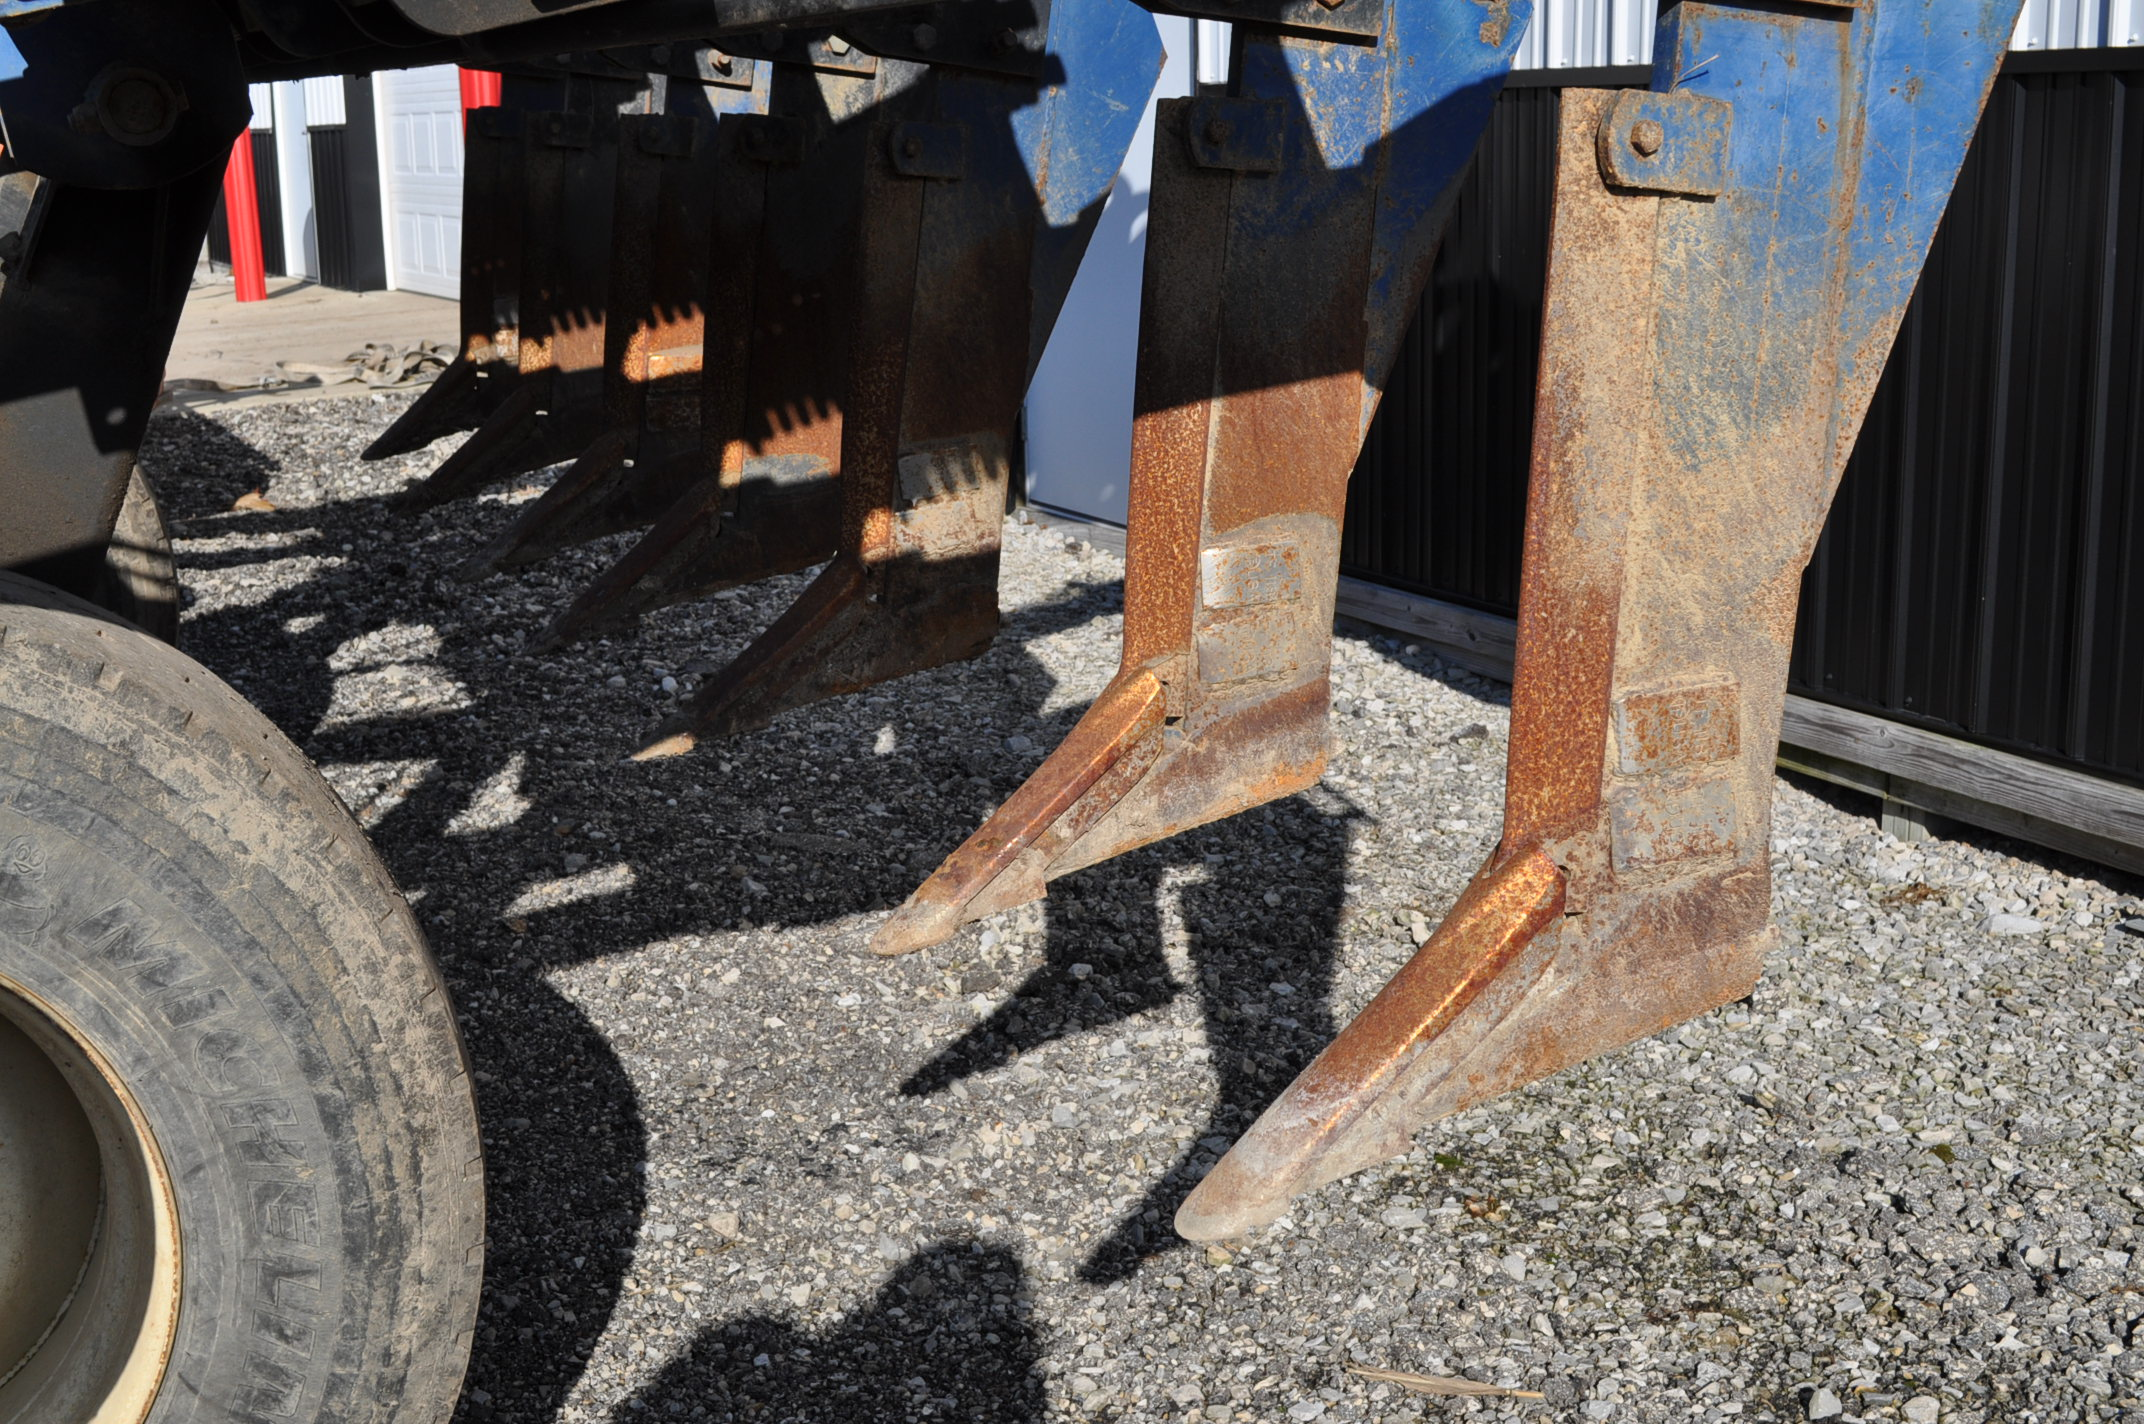 Blu-Jet Tillage Pro 7 shank inline ripper, front and rear hyd adjustable discs, sells with extra - Image 9 of 18